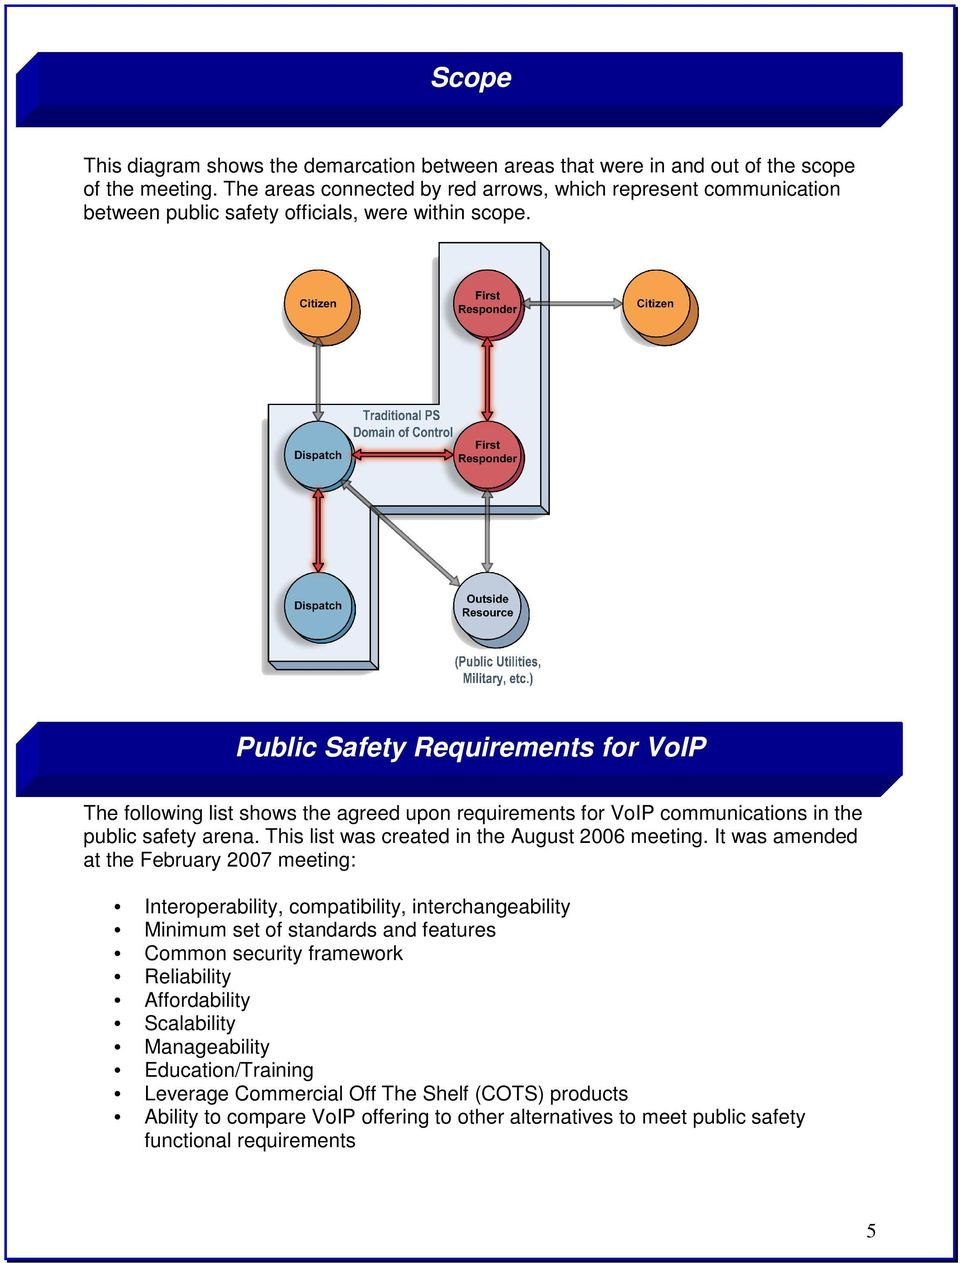 Public Safety Requirements for VoIP The following list shows the agreed upon requirements for VoIP communications in the public safety arena. This list was created in the August 2006 meeting.